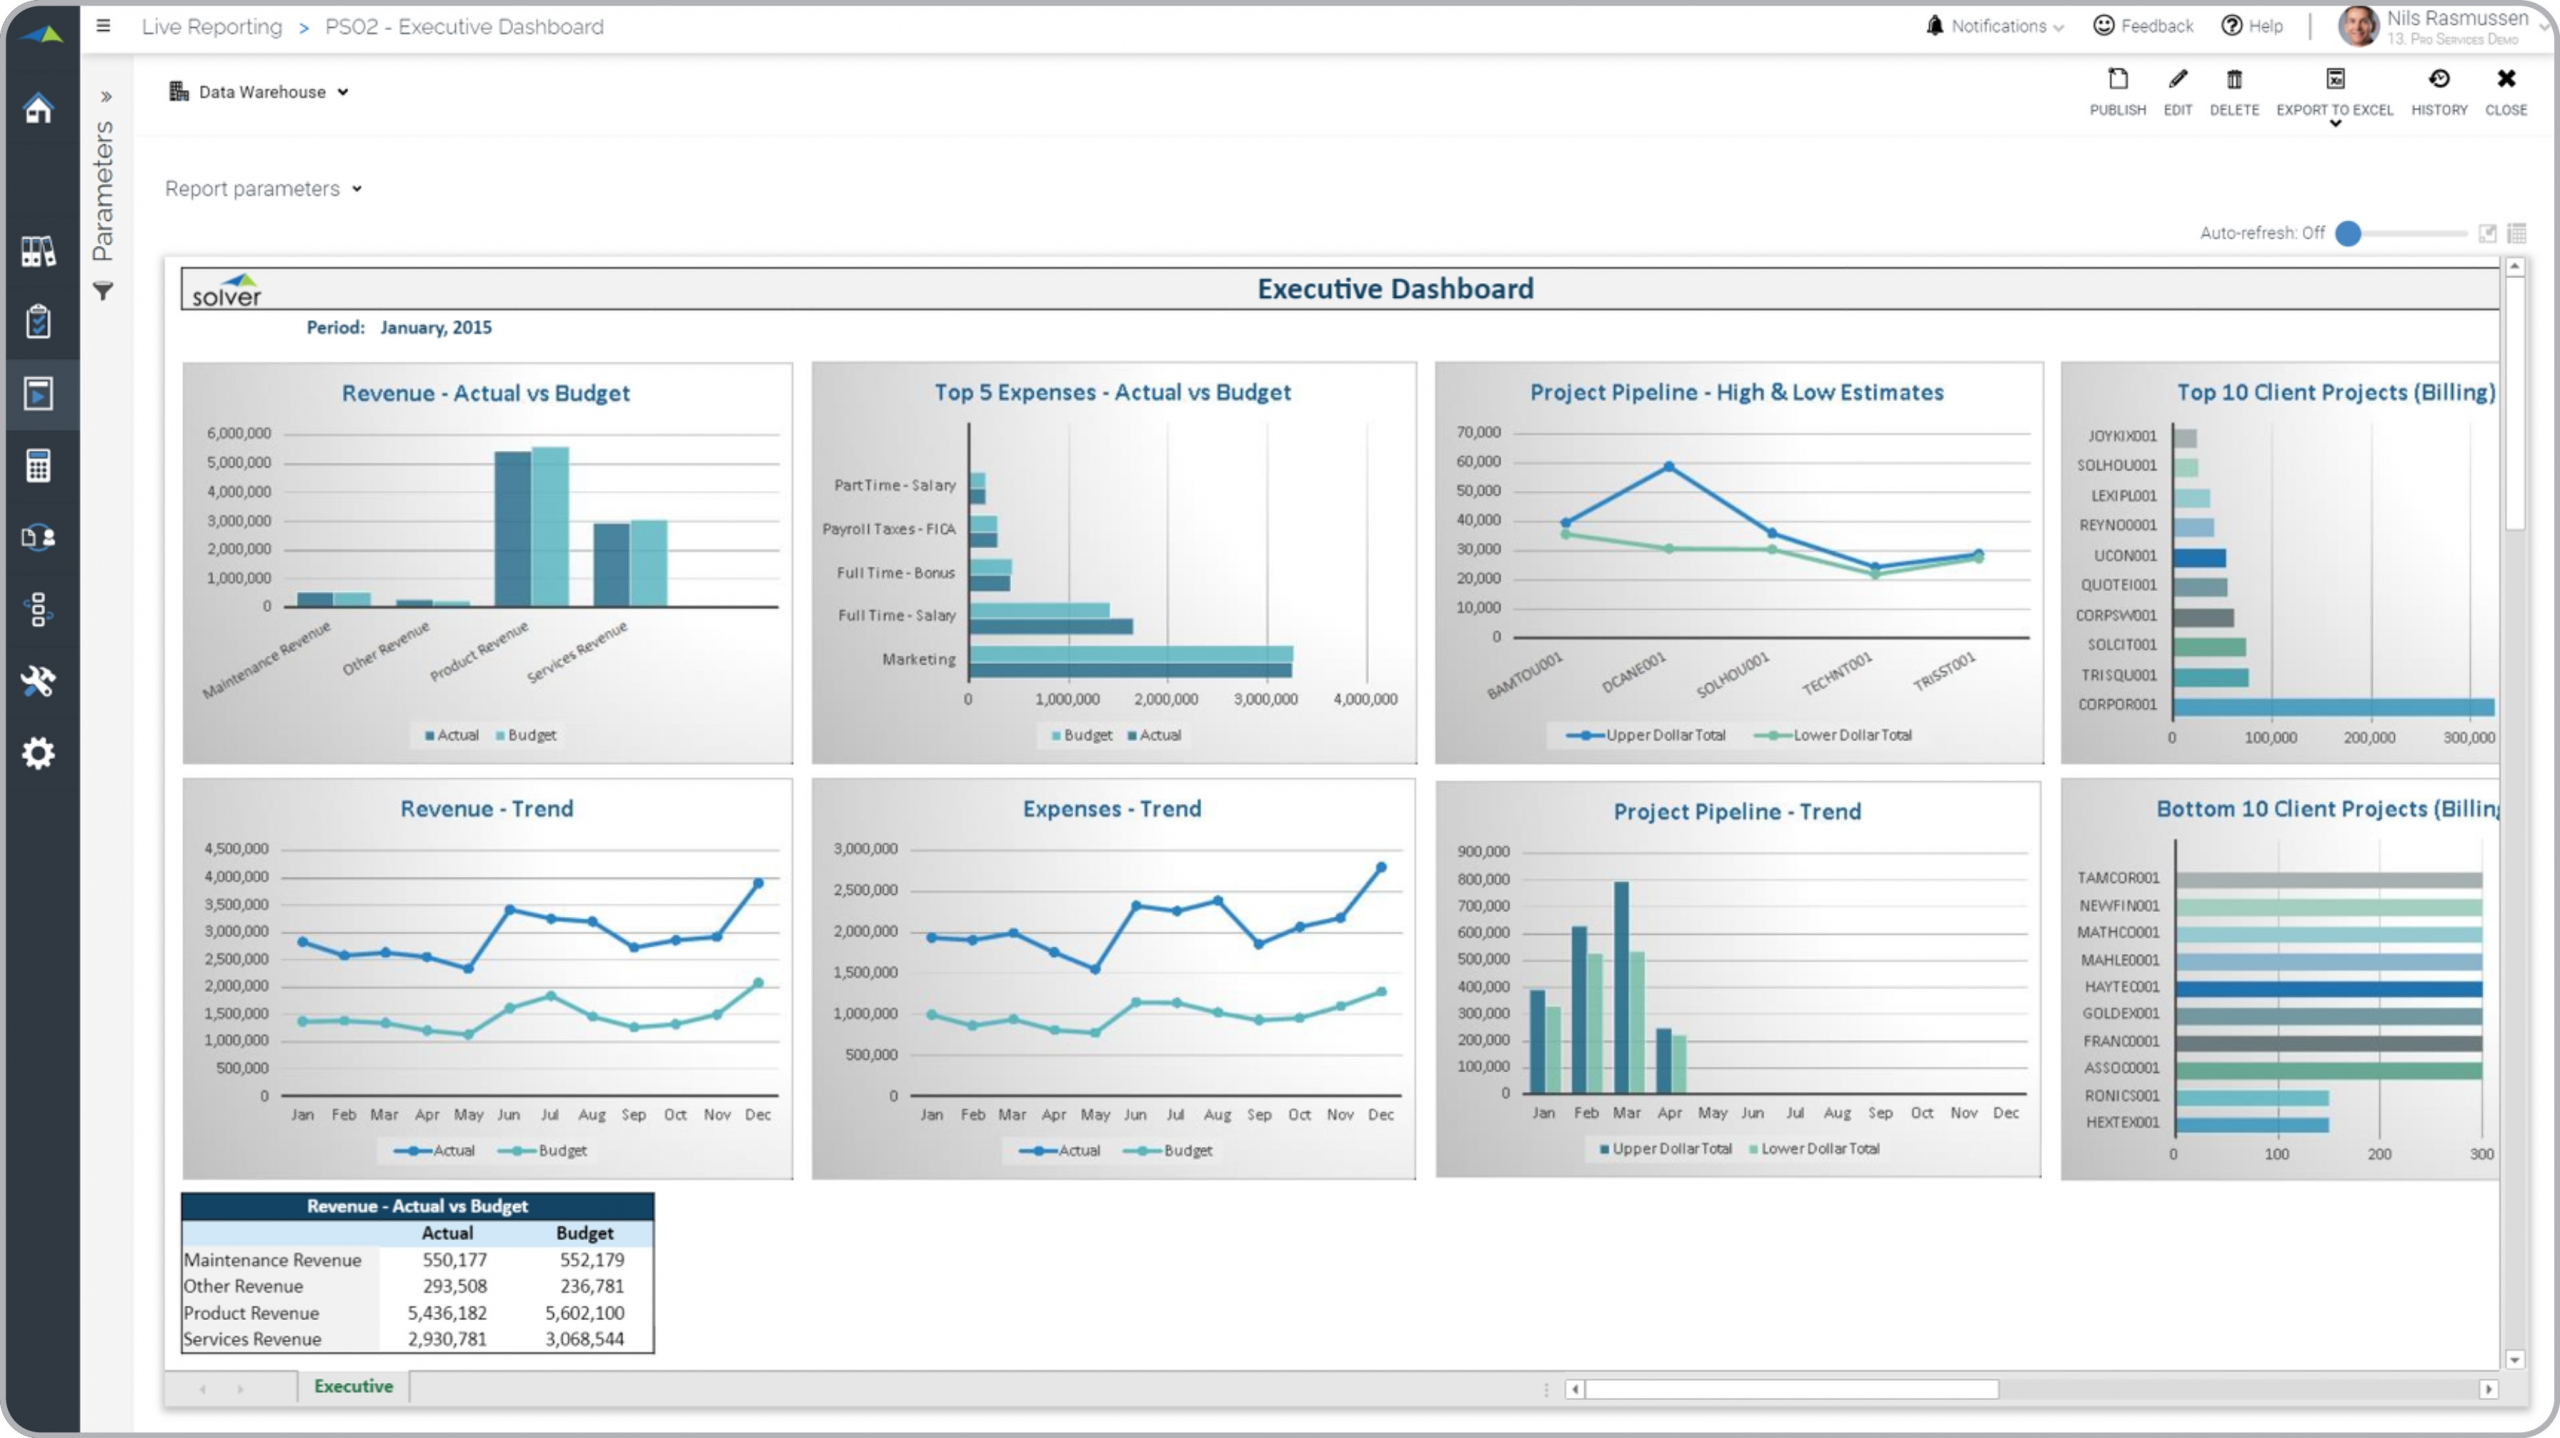 Professional Services – Executive Dashboard